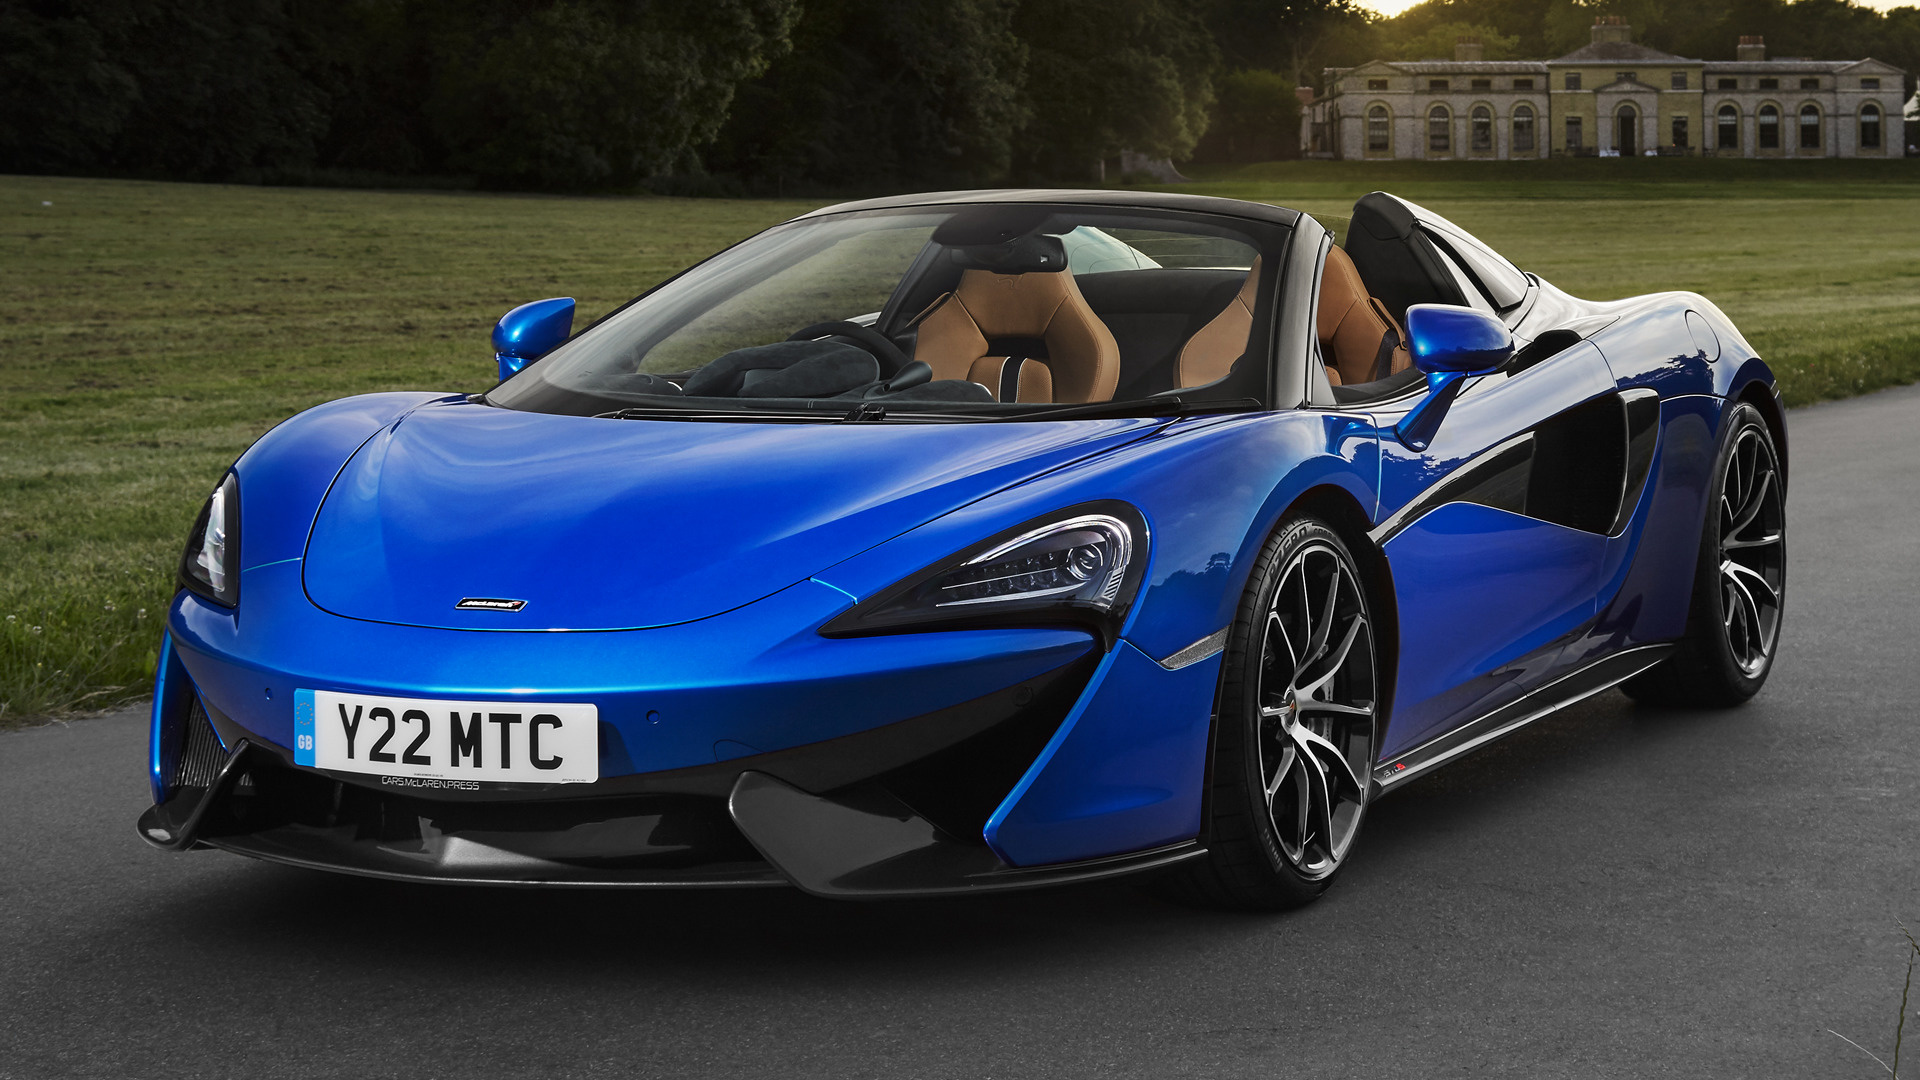 2017 McLaren 570S Spider UK   Wallpapers and HD Images Car Pixel 1920x1080